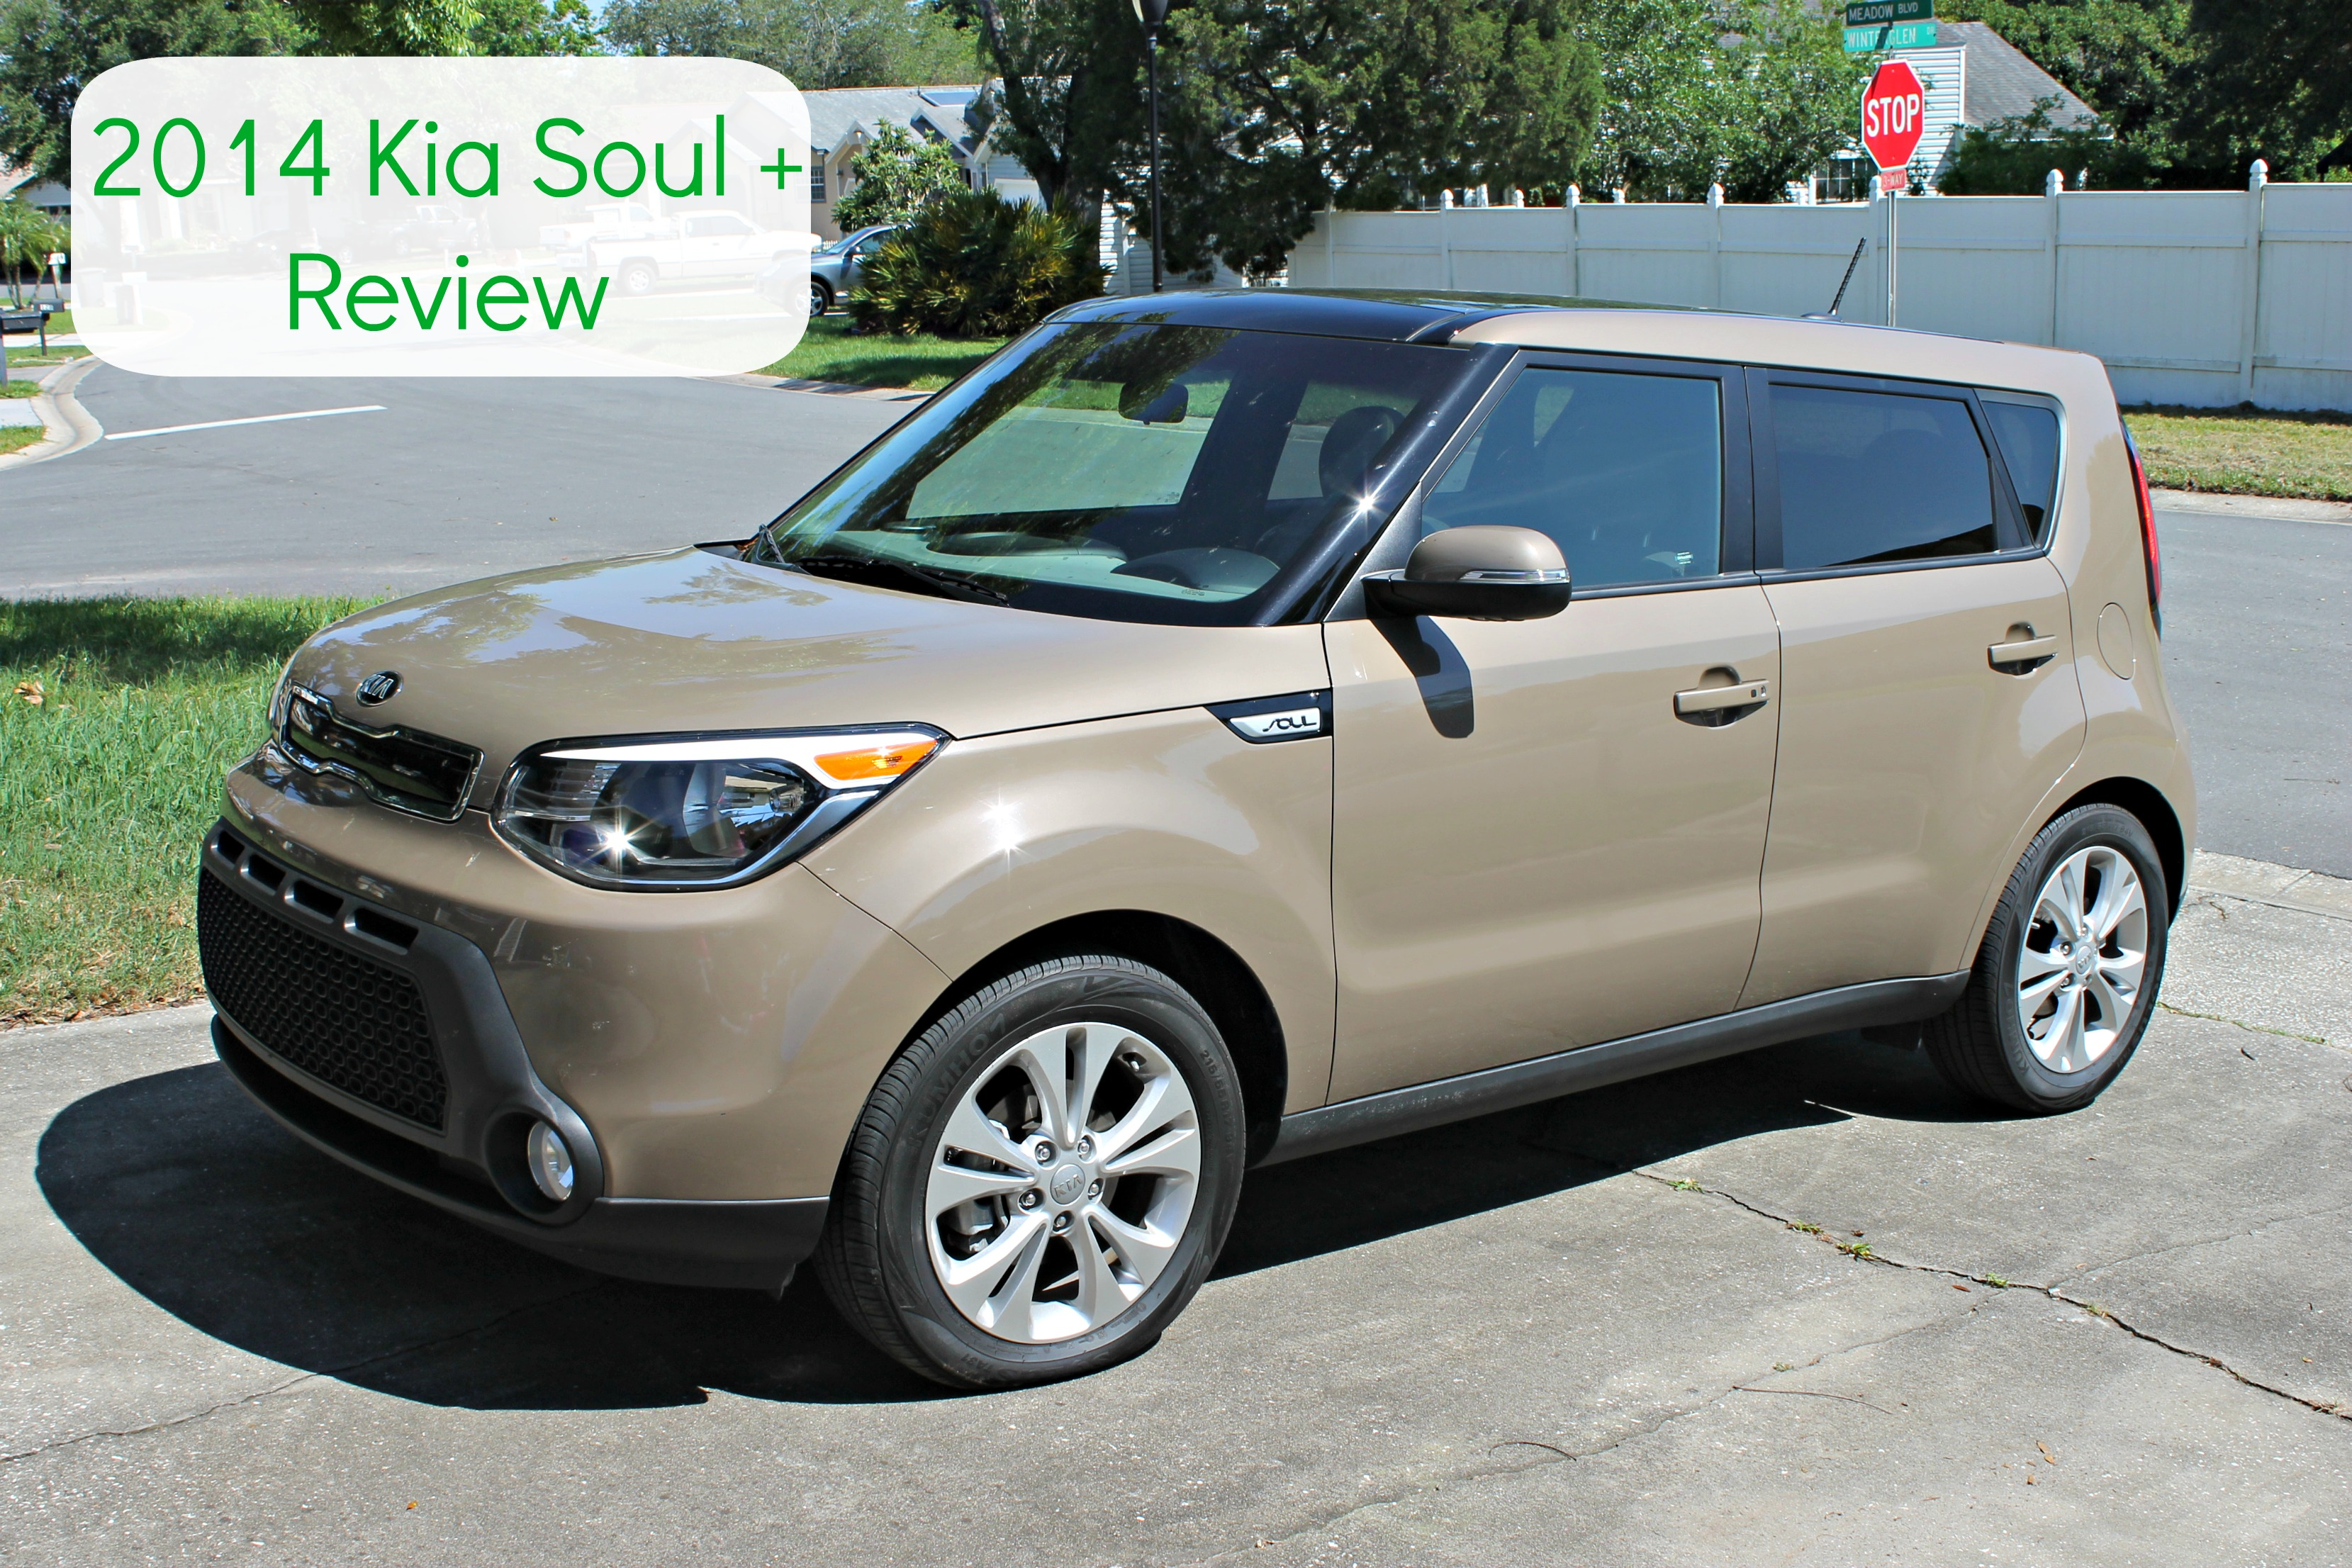 review and this kia you s got i a car soul reviews guessed it fun to sporty has